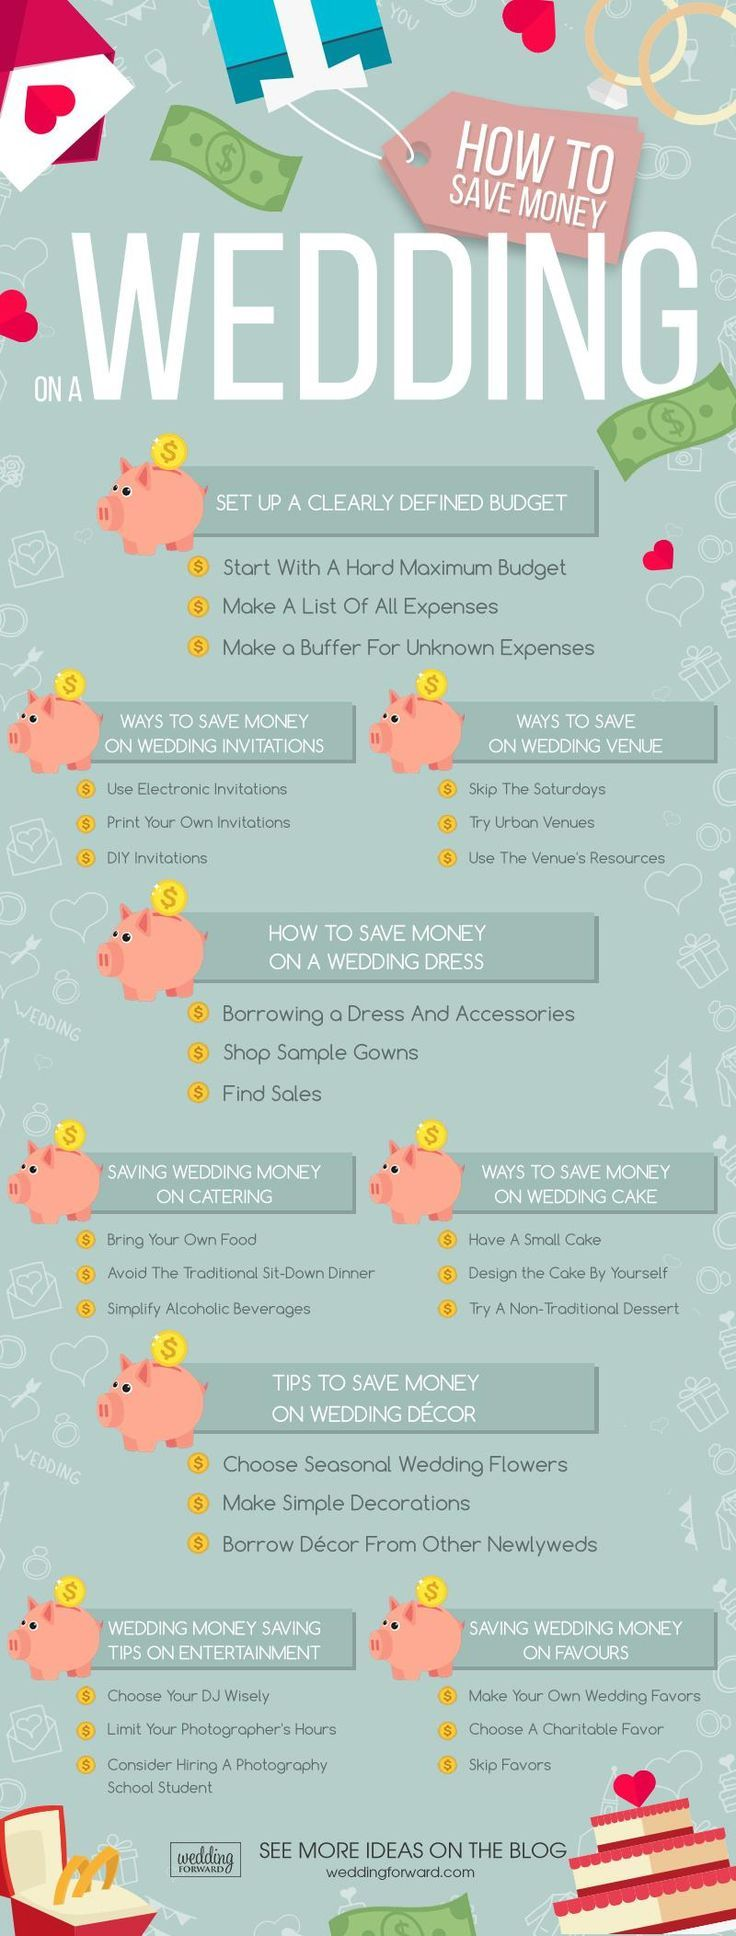 How To Save Money On A Wedding - Top 27 Ways | Wedding Forward